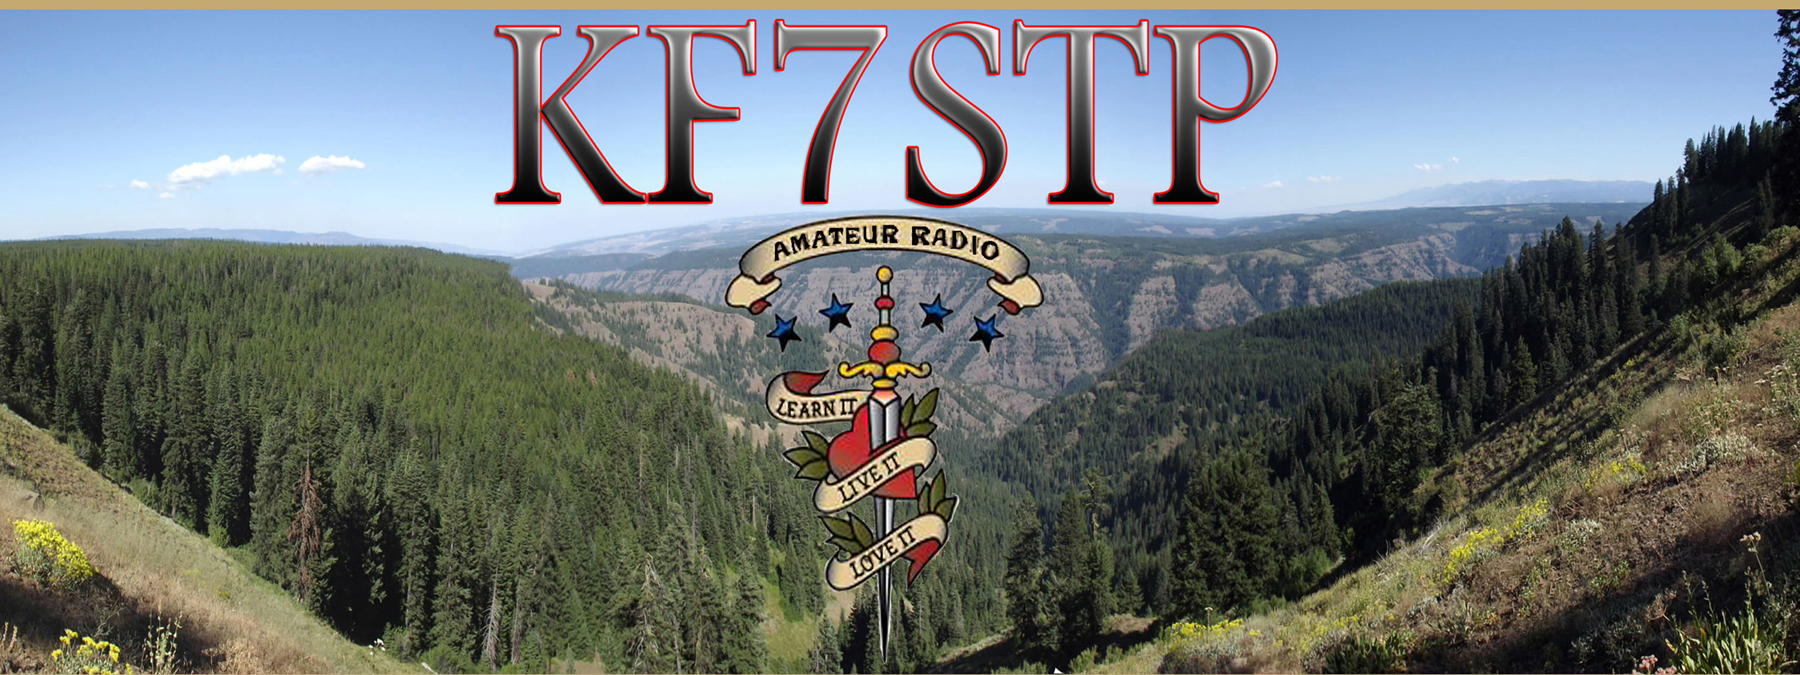 Primary Image for KF7STP